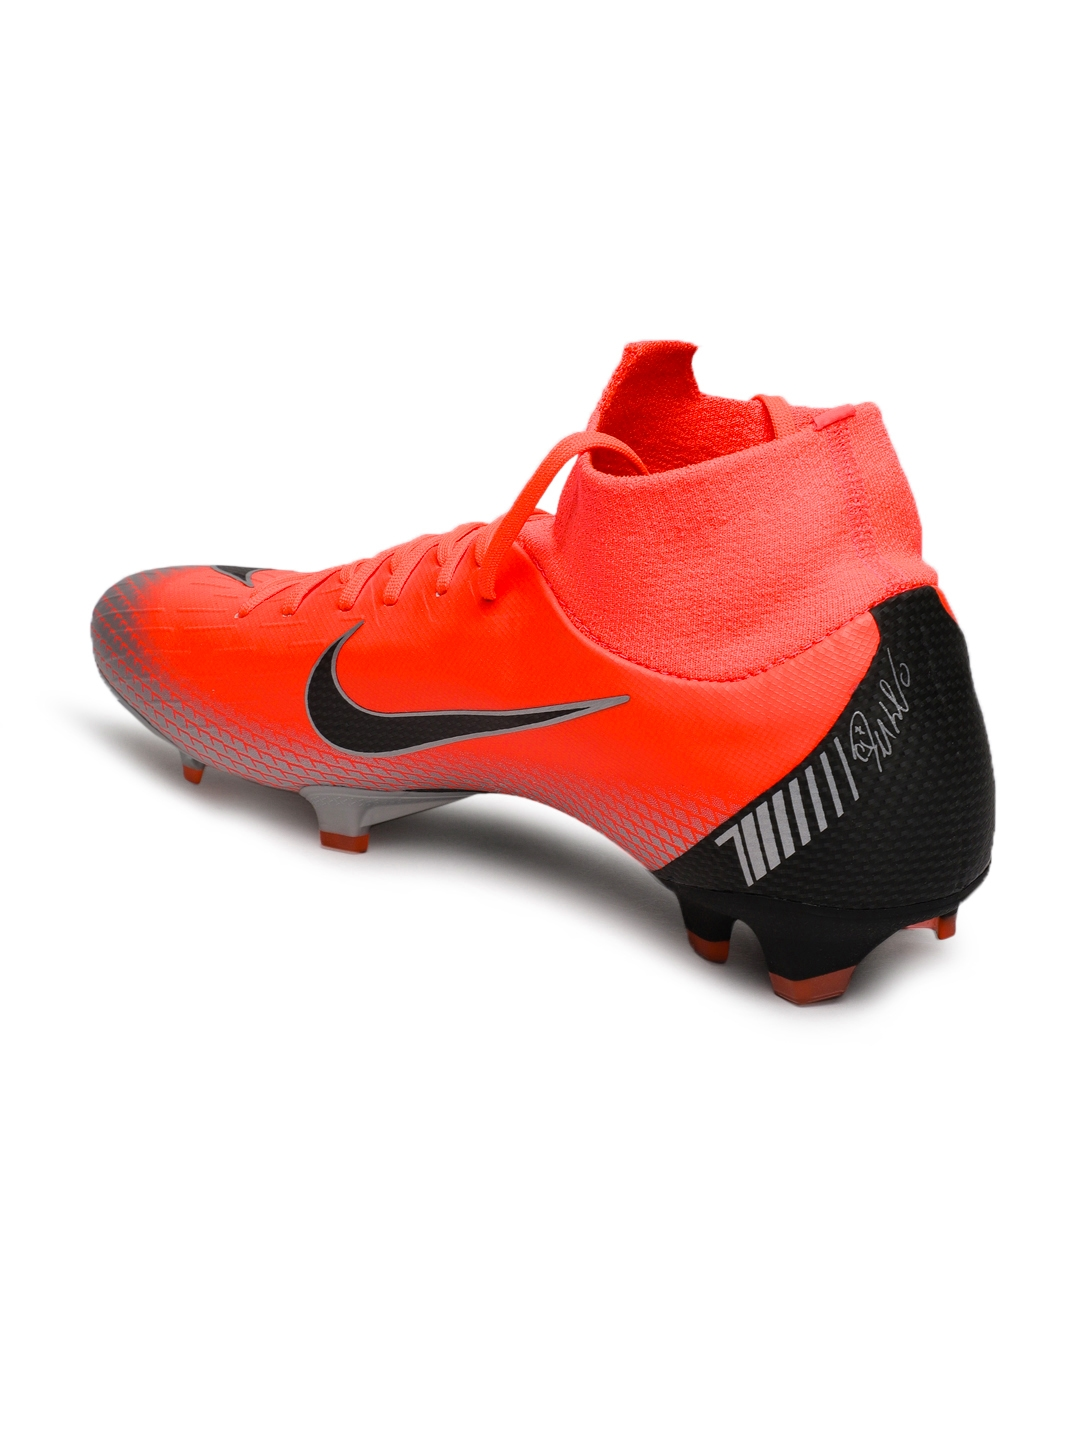 934487a38 Buy Nike Unisex Red   Black SUPERFLY 6 PRO CR7 FG Leather Football ...